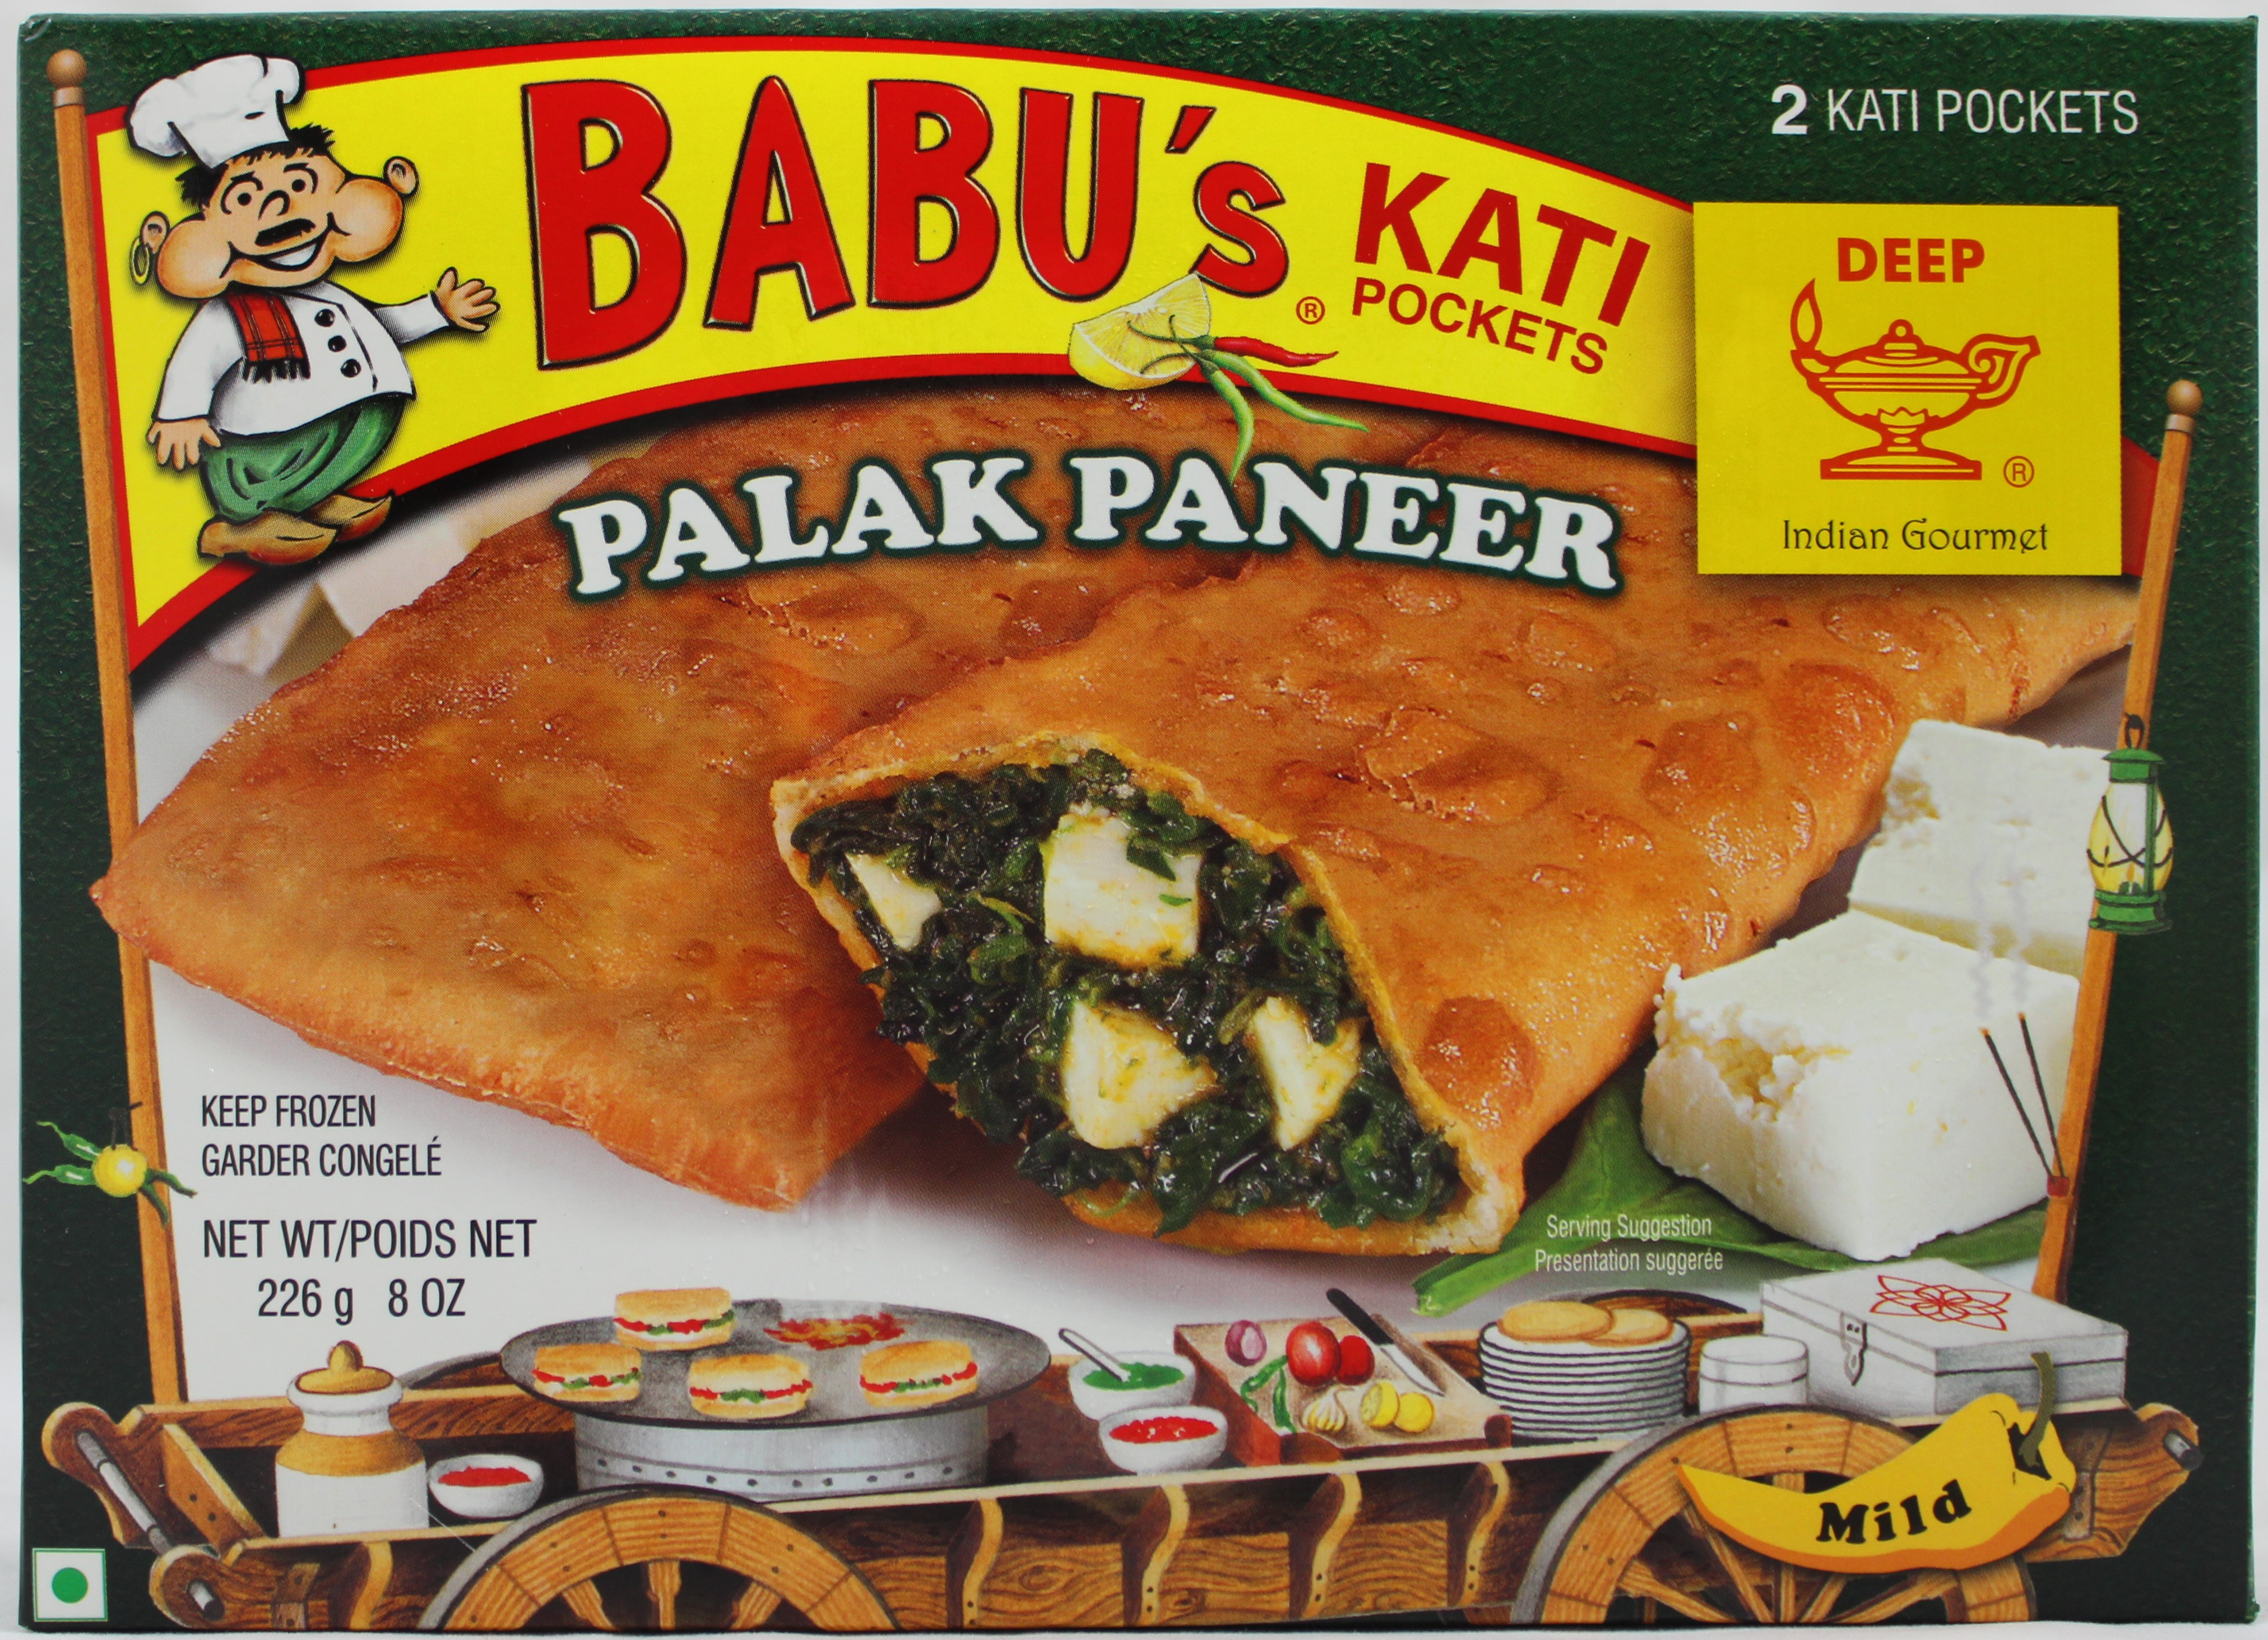 Palak Paneer 2 Pocket Snndwch 8oz